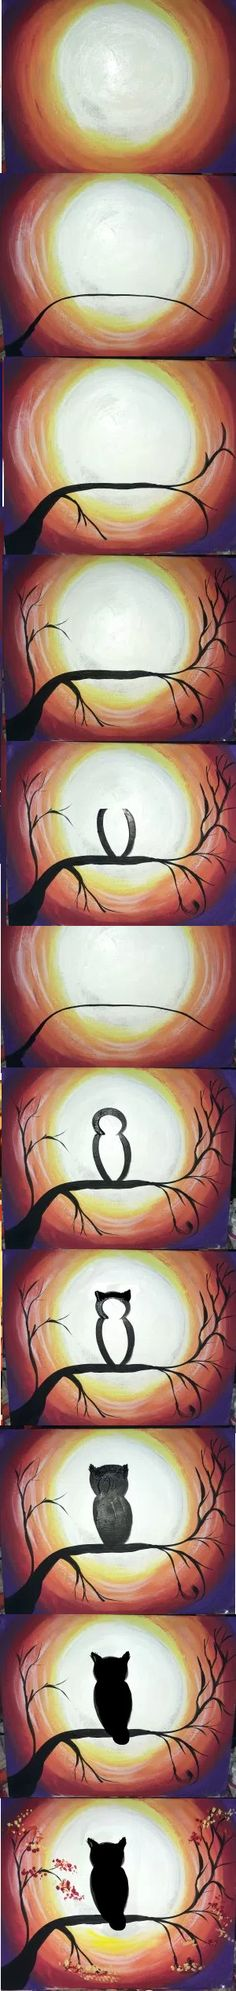 Click the image to go to the FREE tutorial and see more details! Step by step painting. How to paint a tree owl silhouette with full moon.